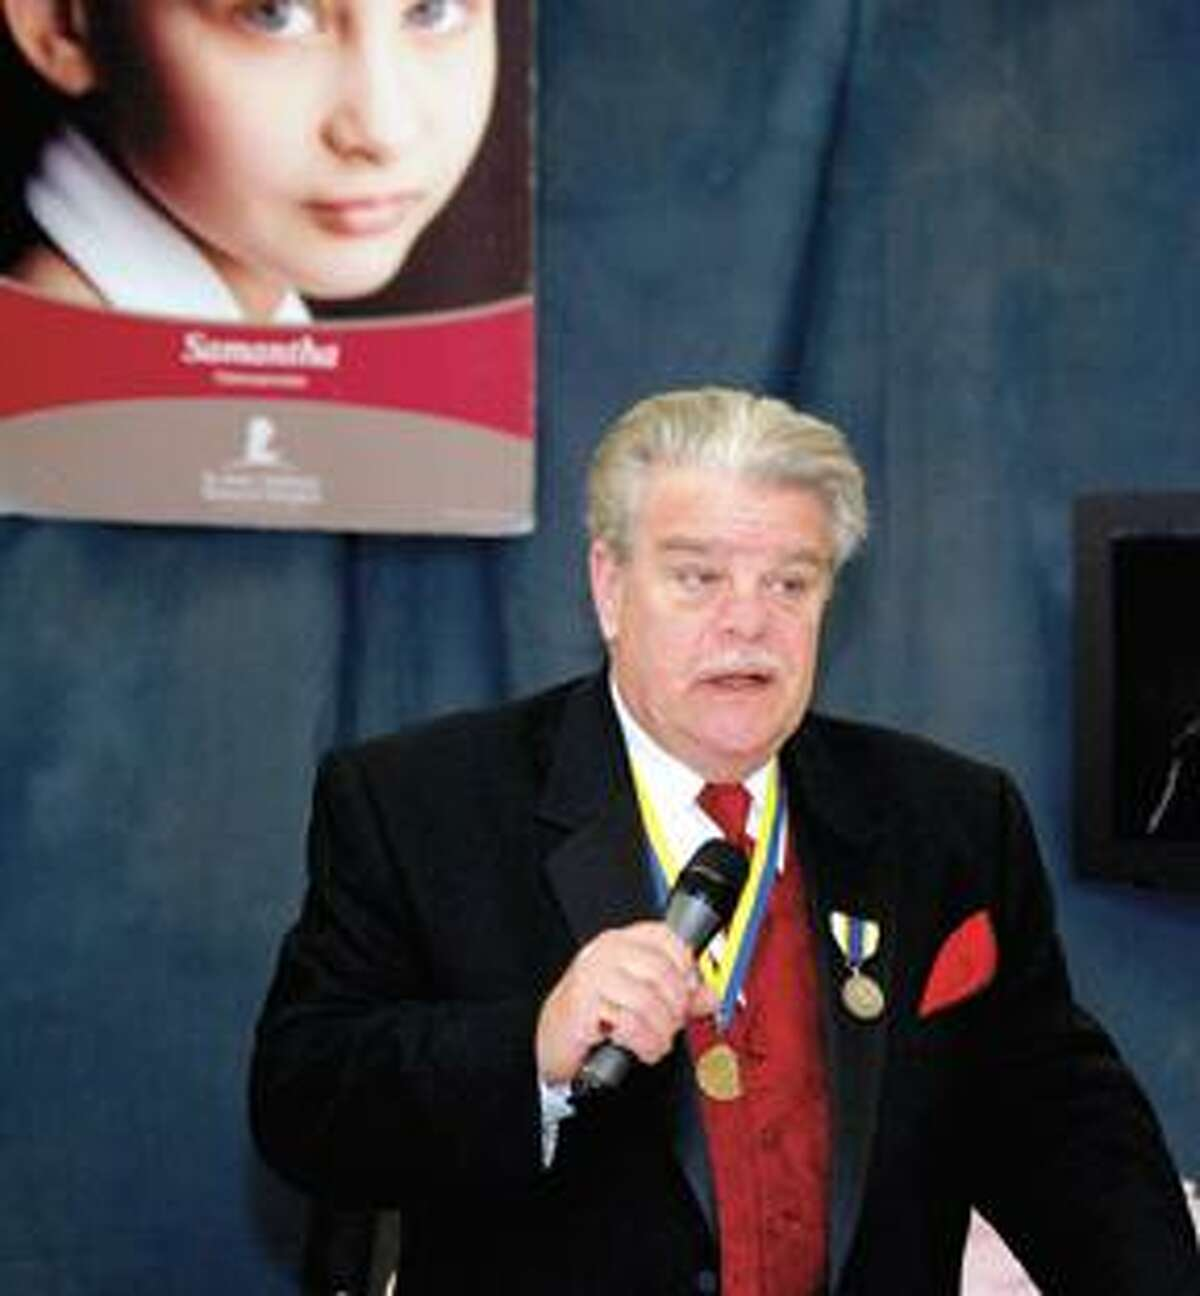 RONALD DEROSA/Register CitizenMichael Driscoll, who has run the St. Jude's Telethon since 1980, emcees the event on Sunday.